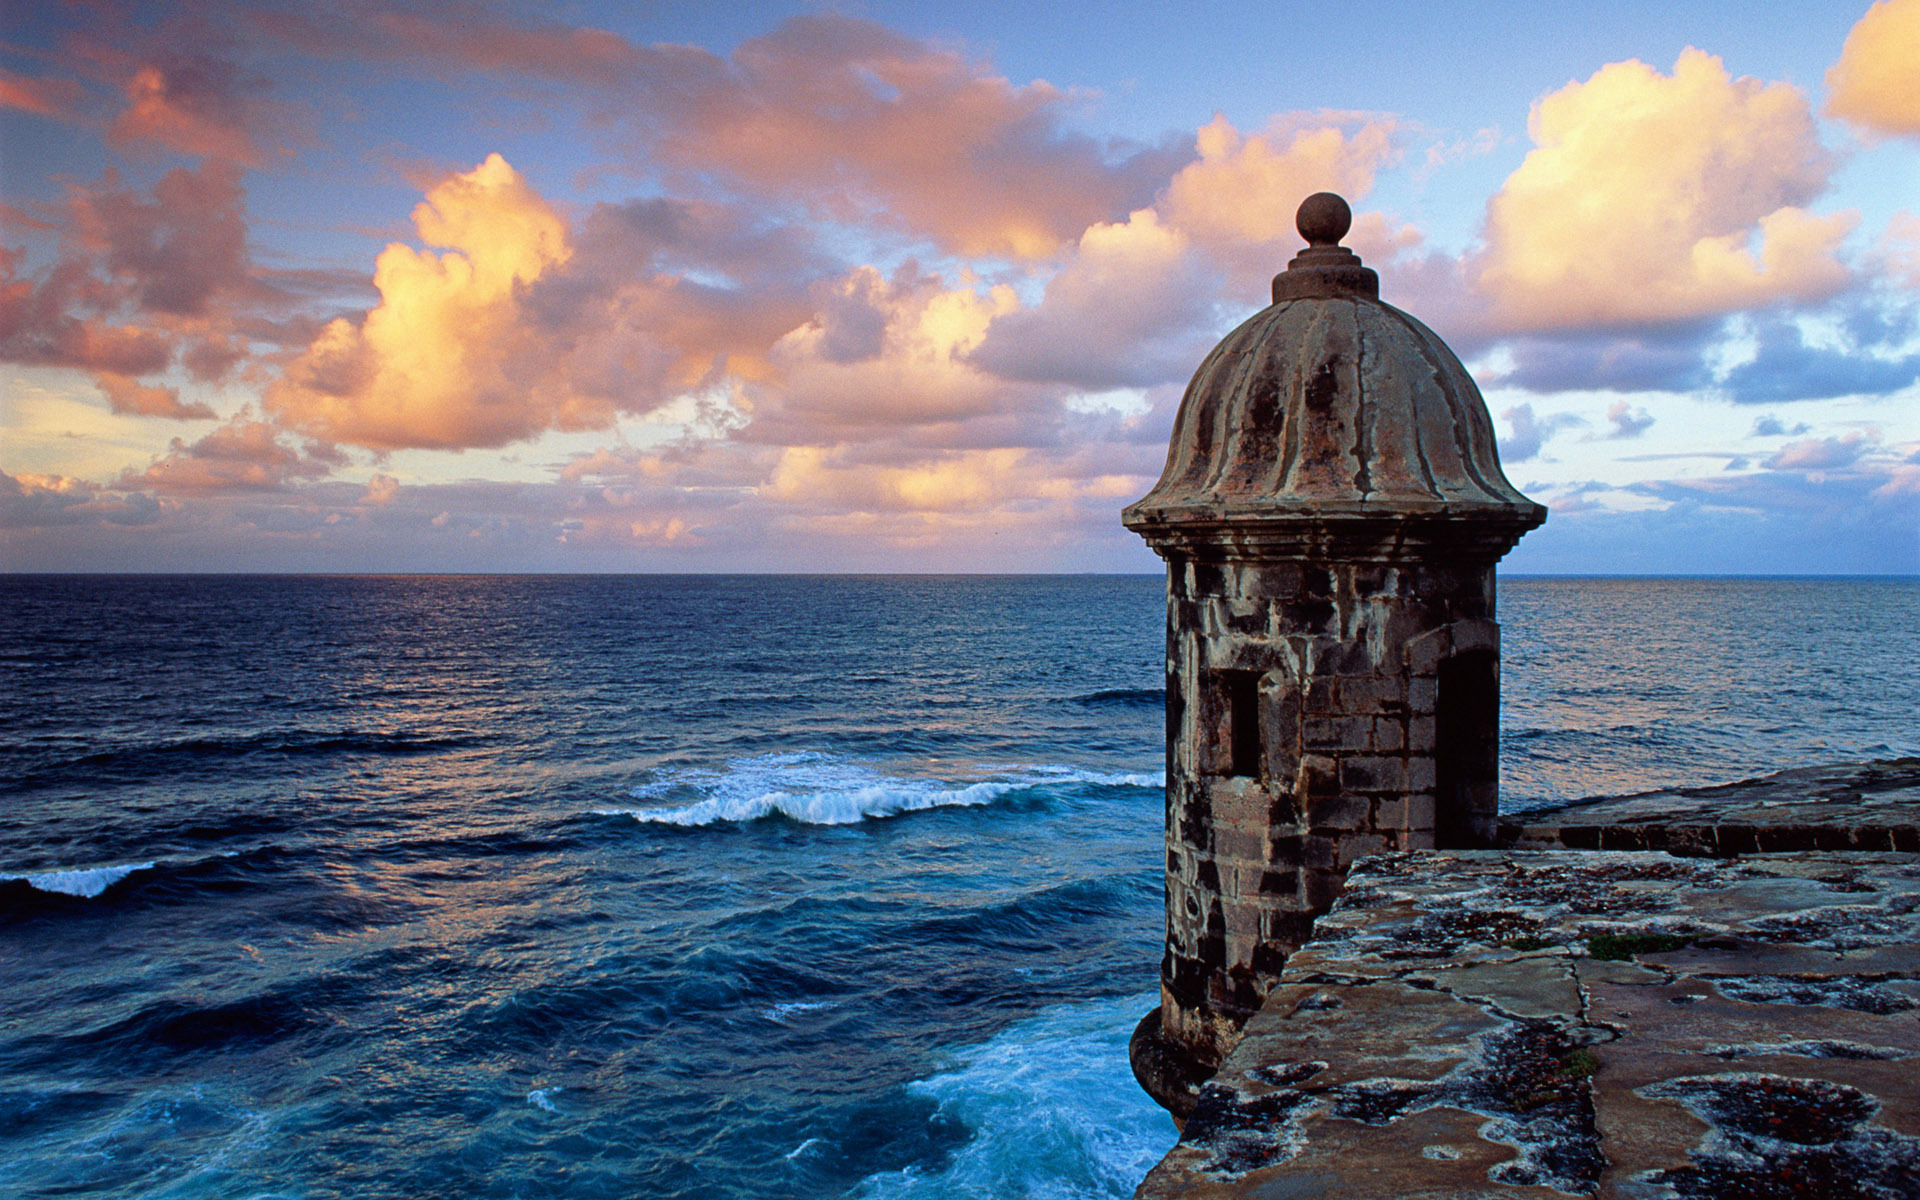 puerto rico location hd wallpaper, background images